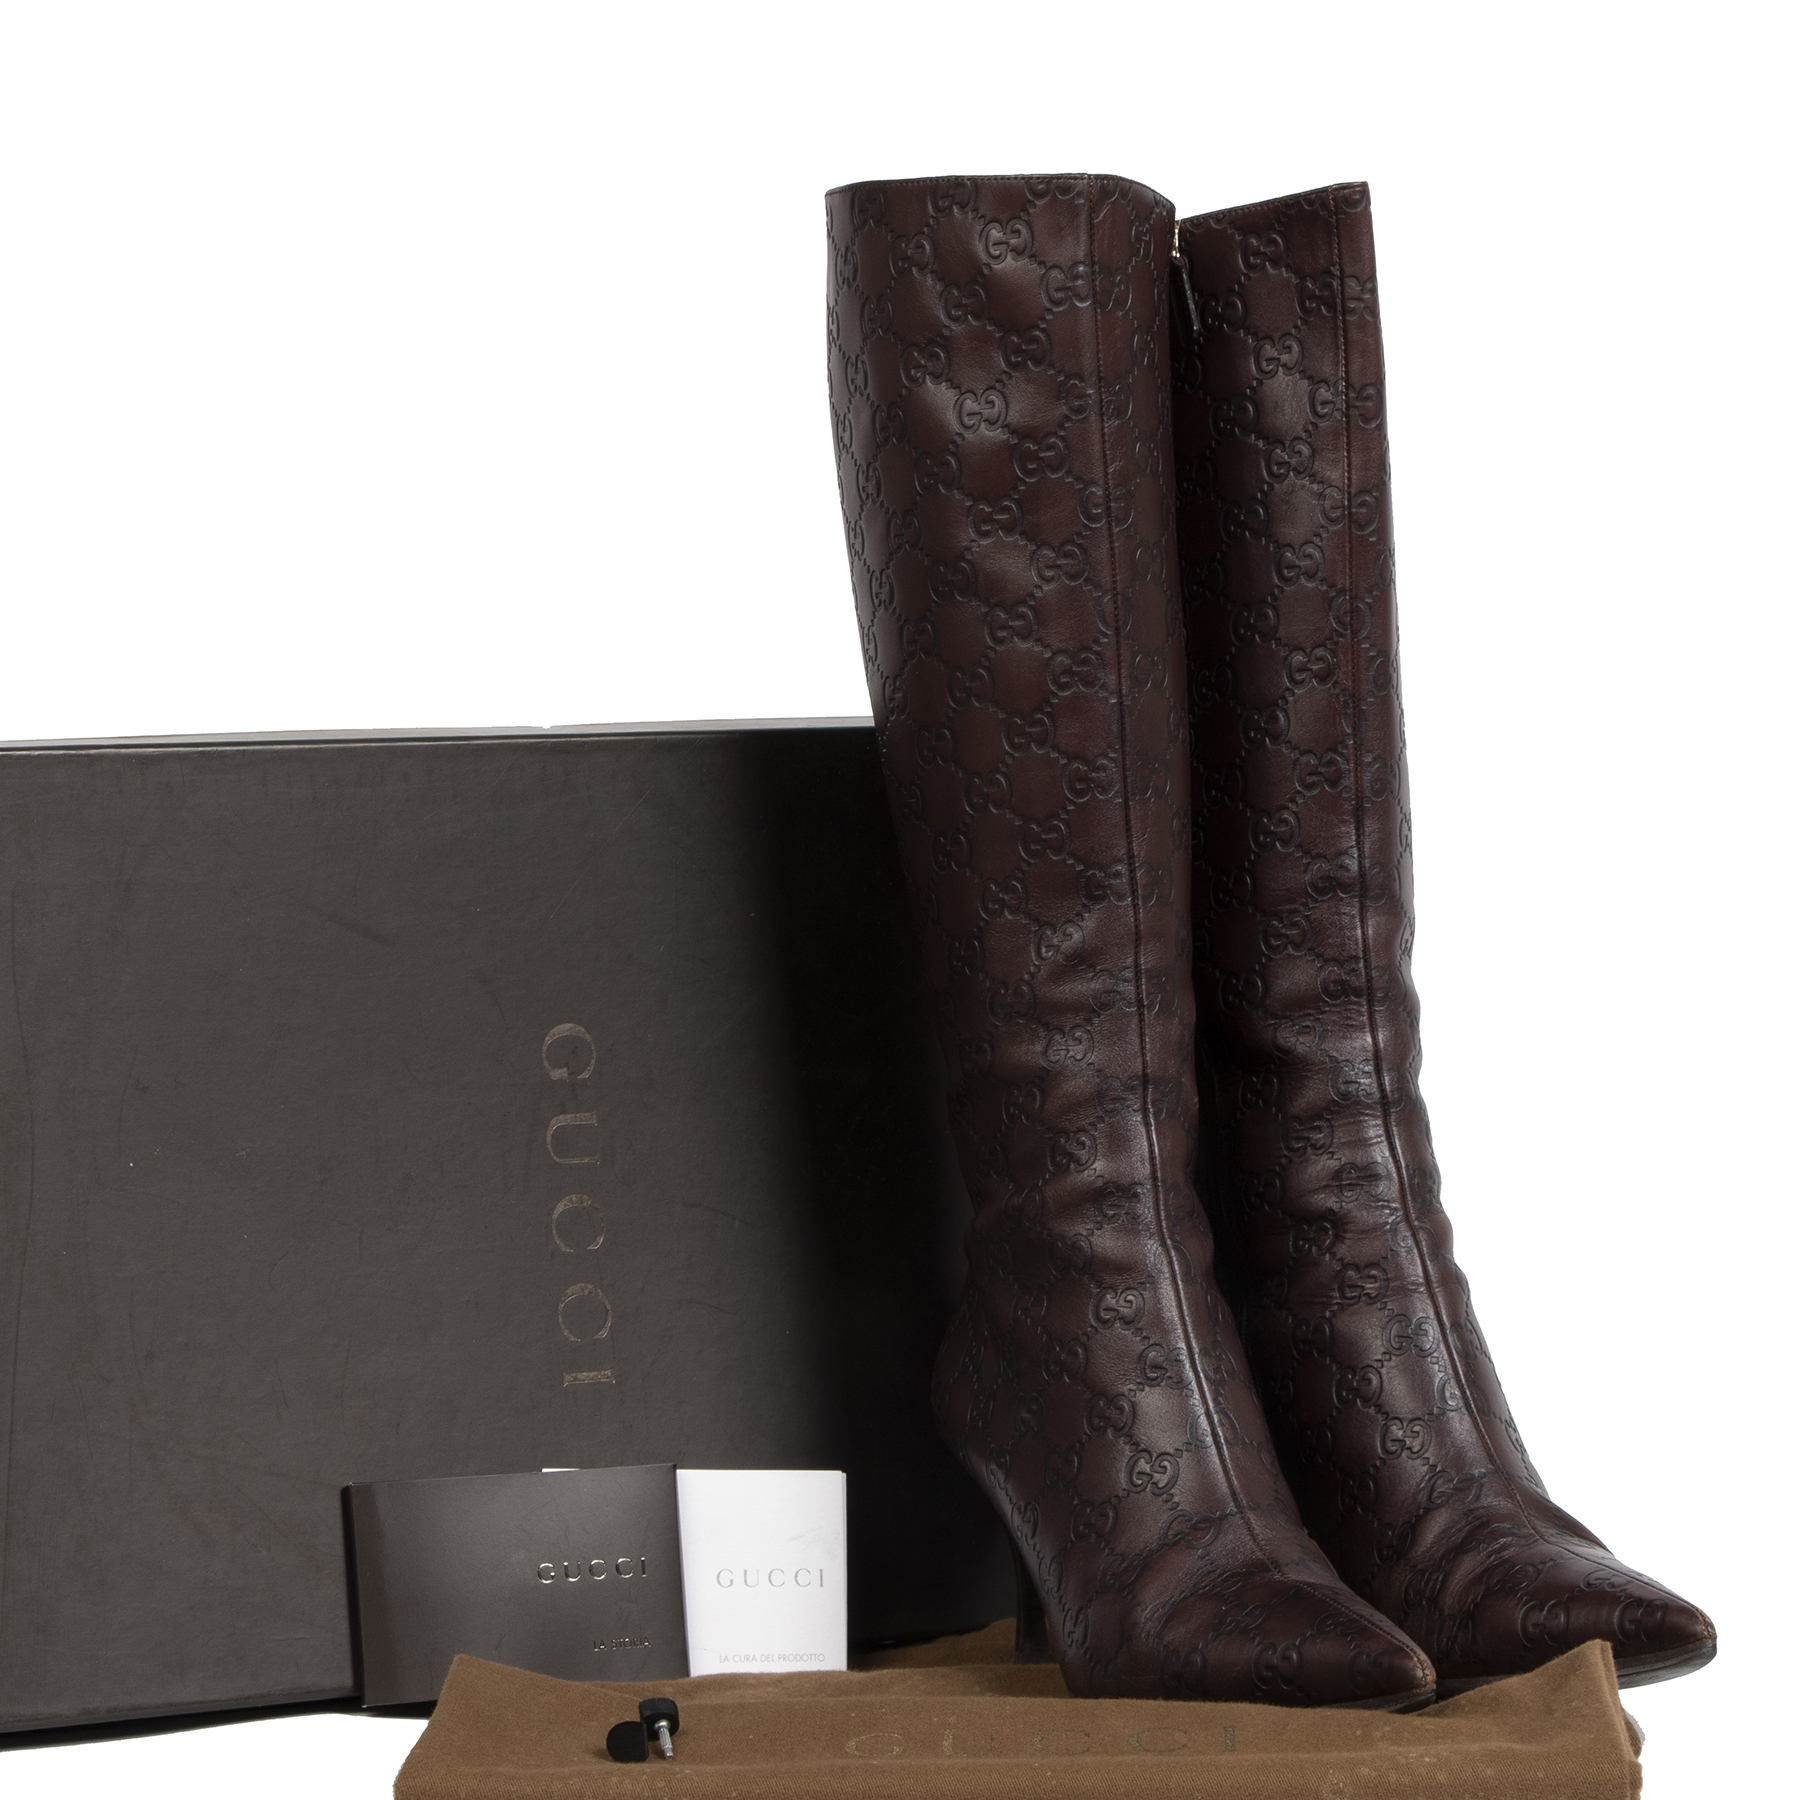 Gucci Guccissima Chocolat Leather knee High Boots - Size 38,5